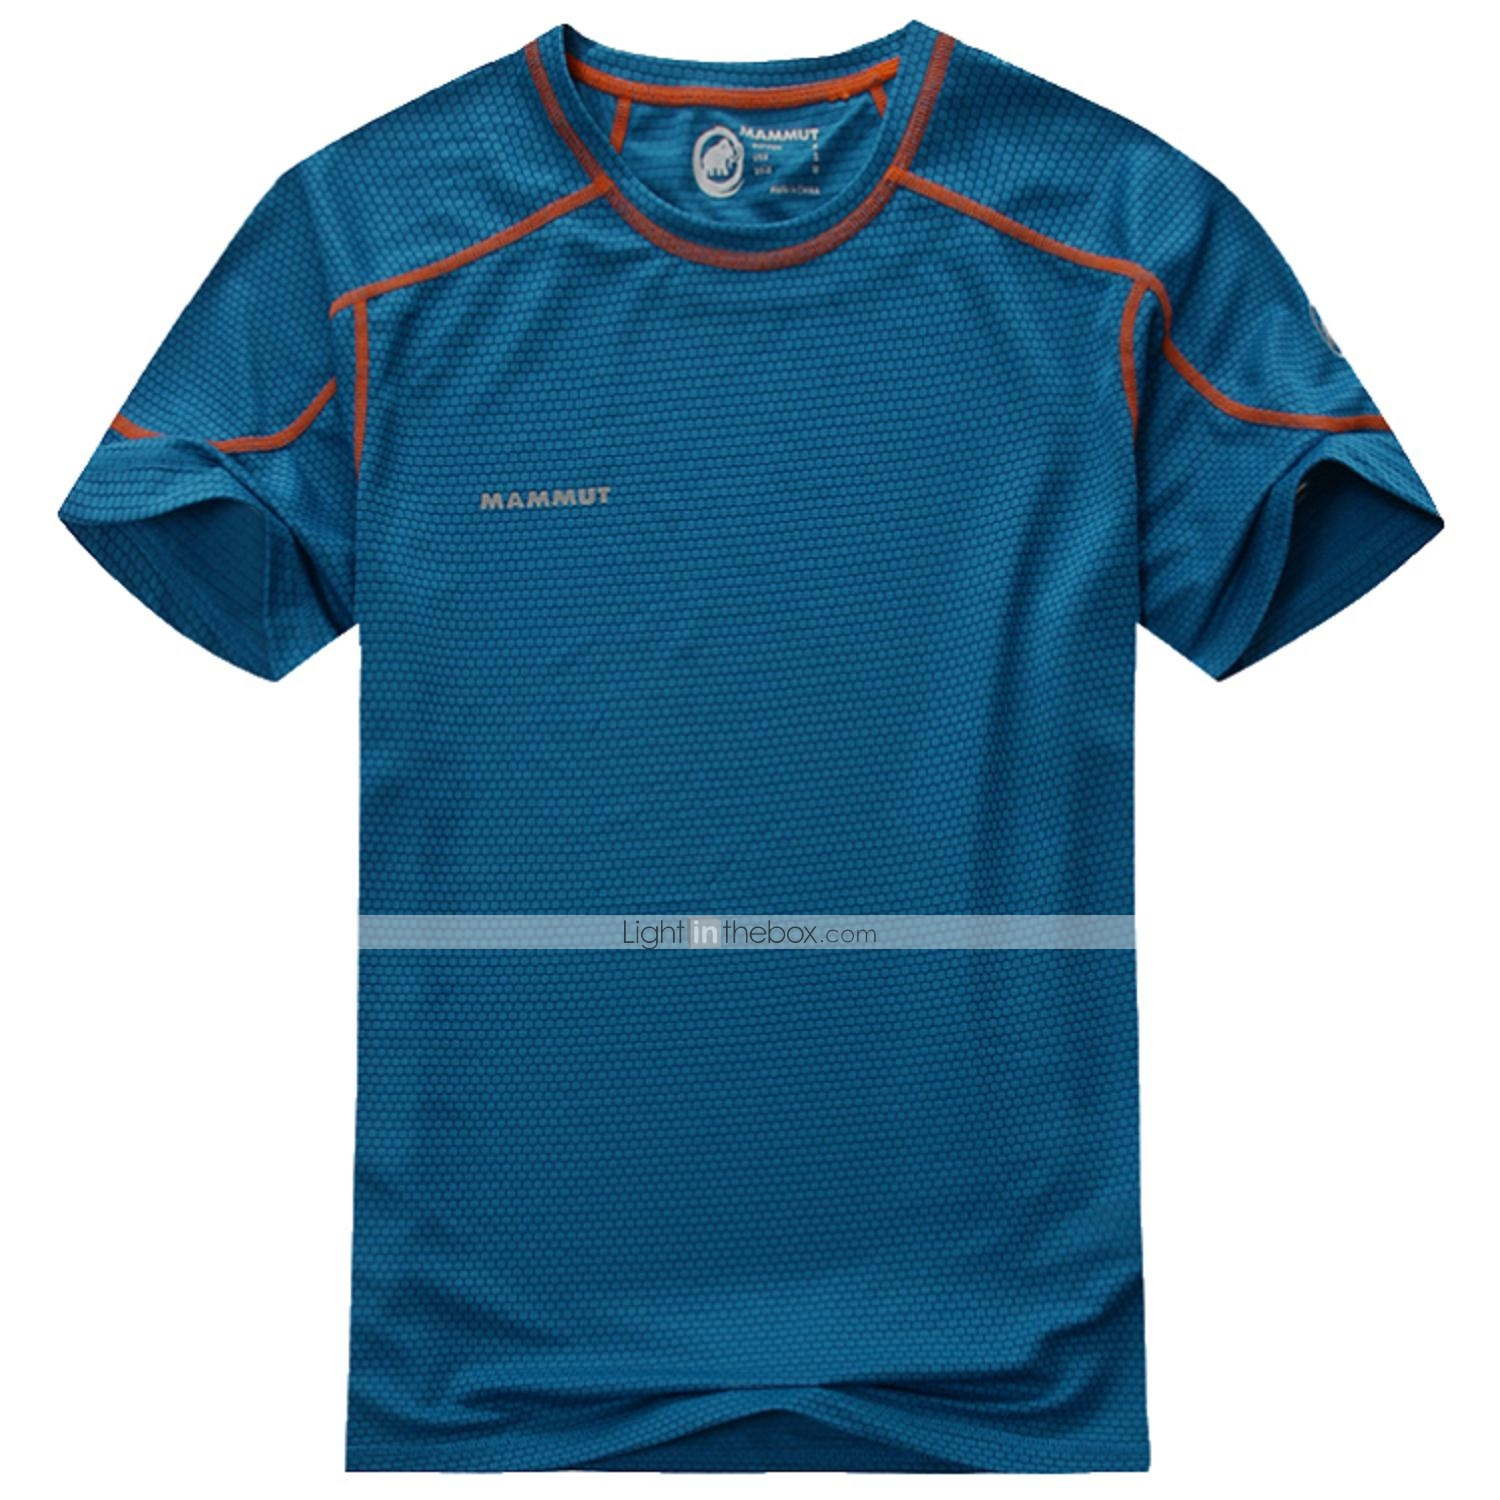 f7dc964a2da9 Men s Short Sleeves Running T-shirt Tops Quick Dry Ultraviolet Resistant  Wearable Breathable Soft Static-free Sweat-wicking smooth Summer  04807120